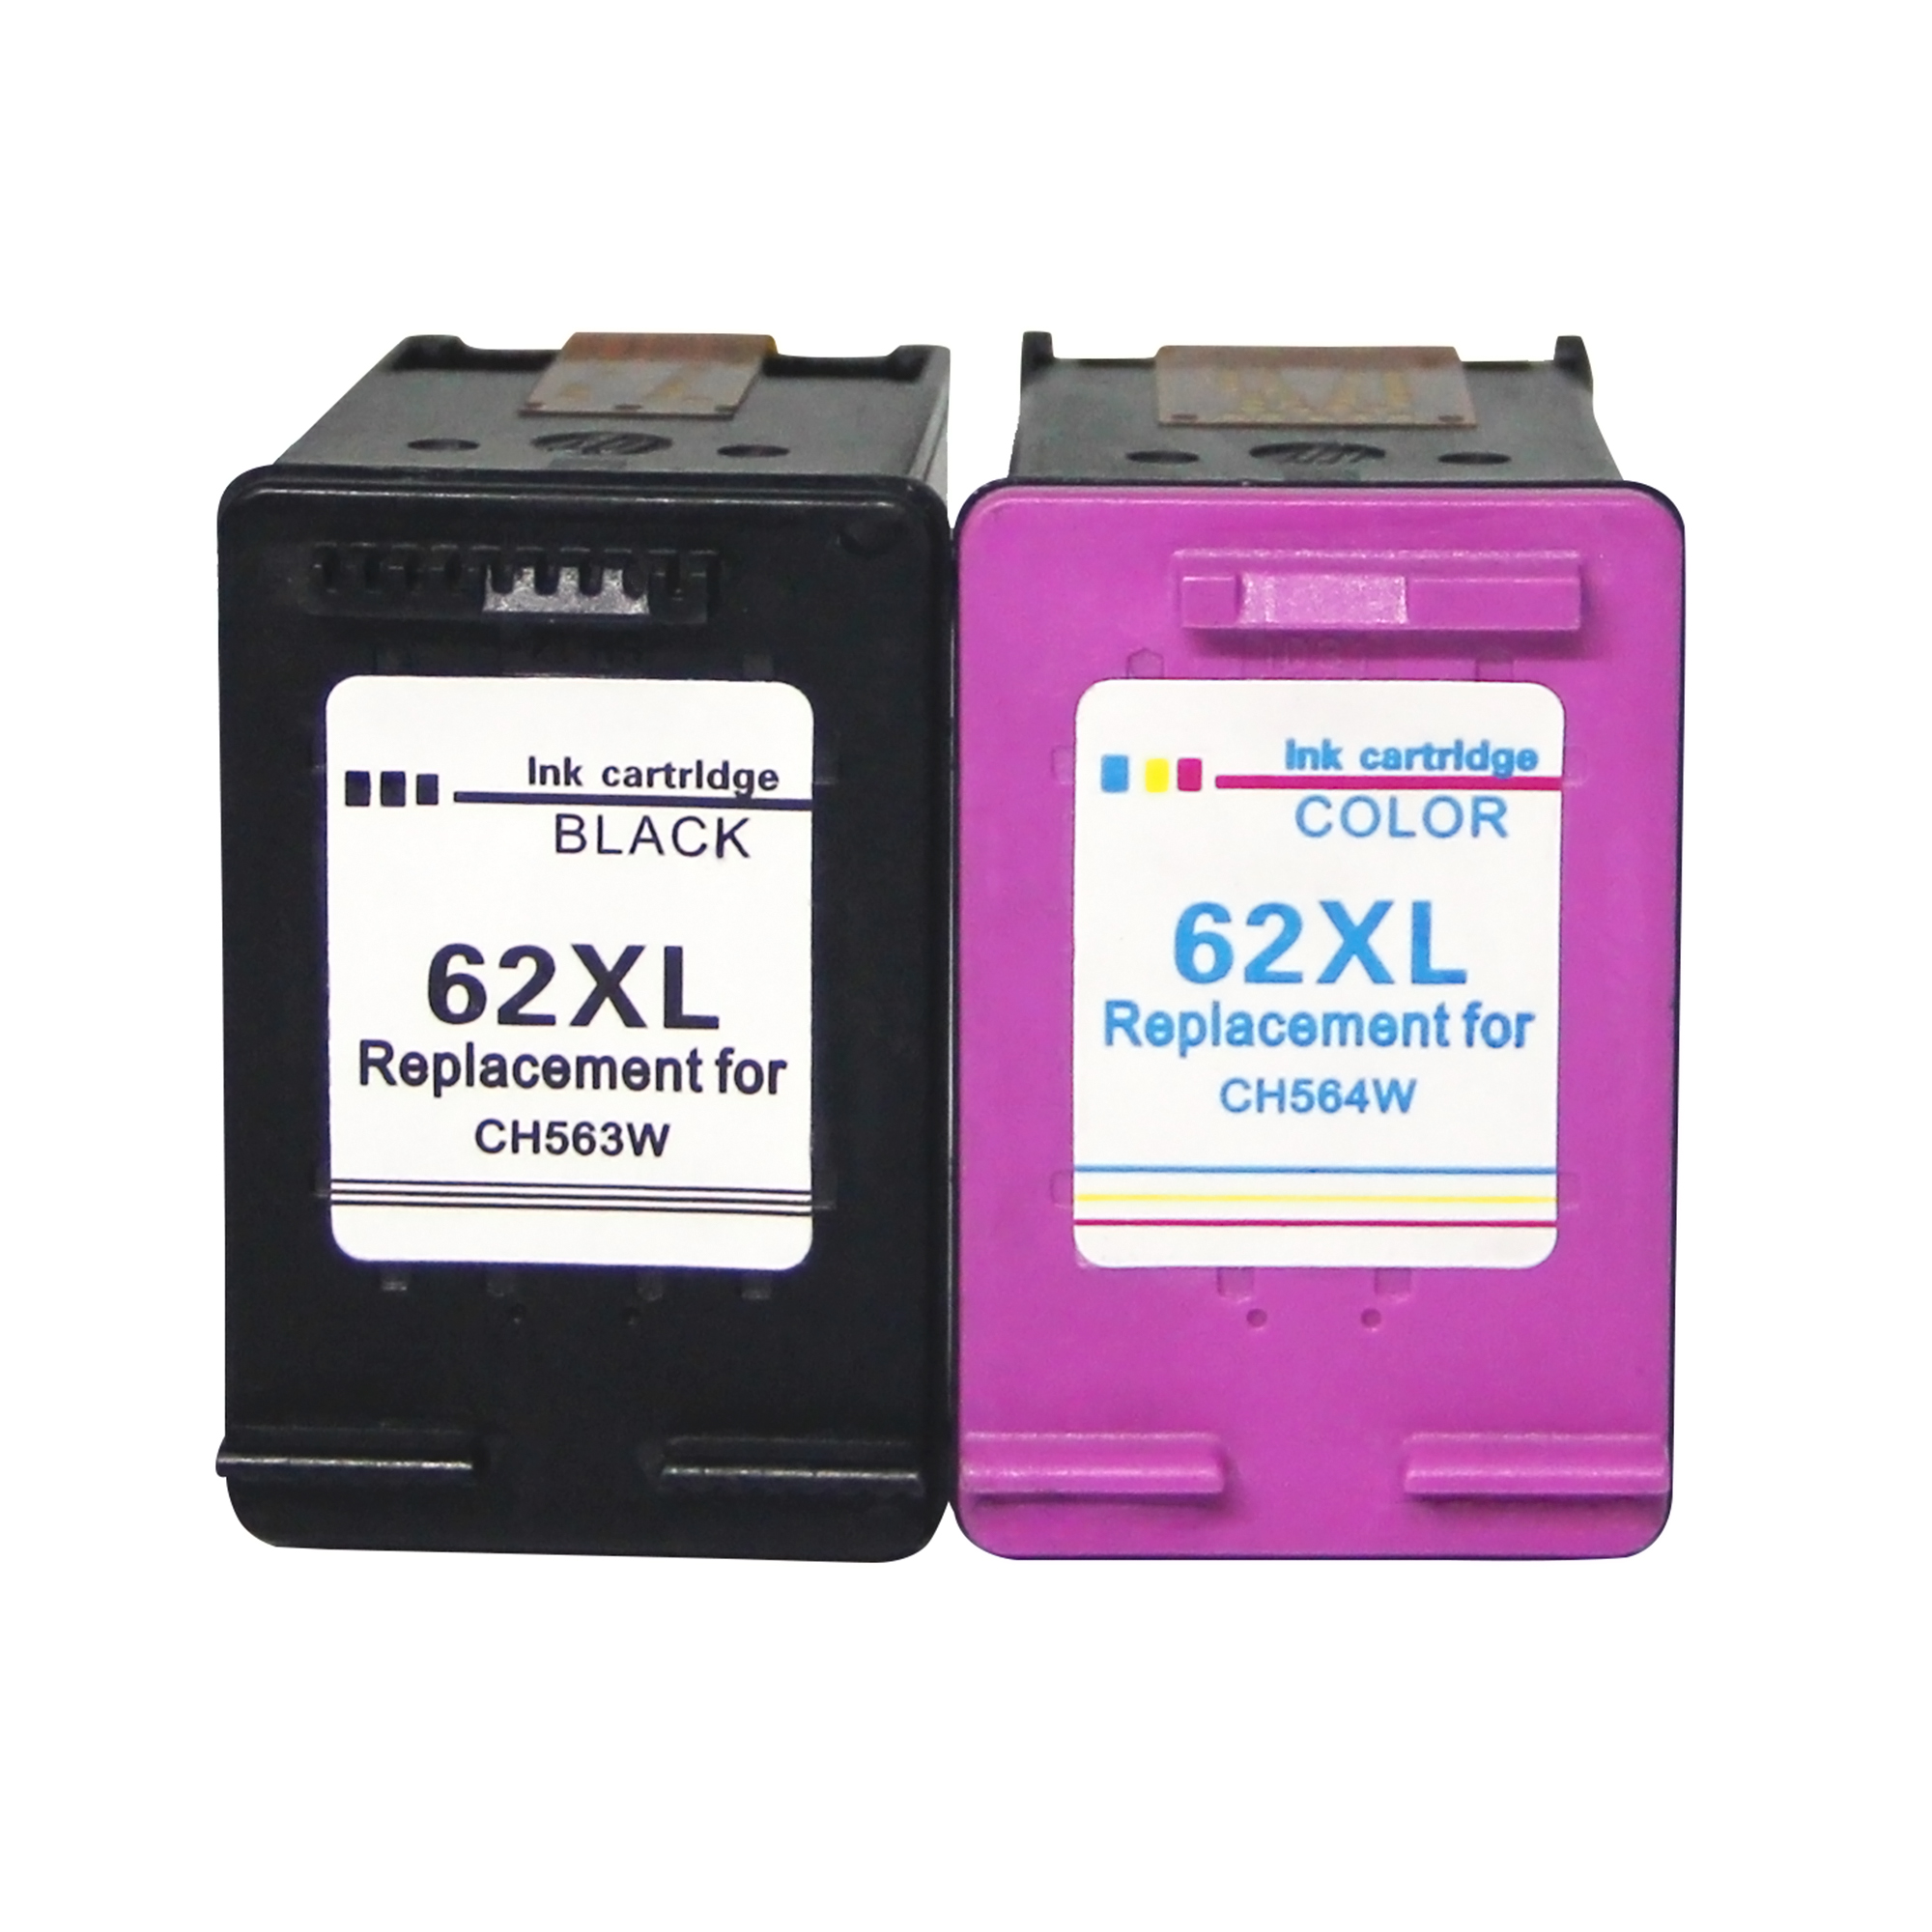 Replacement for HP 62 XL Ink Cartridges for HP Envy 5640 5540 5546 5544 5644 HP OfficeJet 5742 5744 200 250 MobileImpresoras